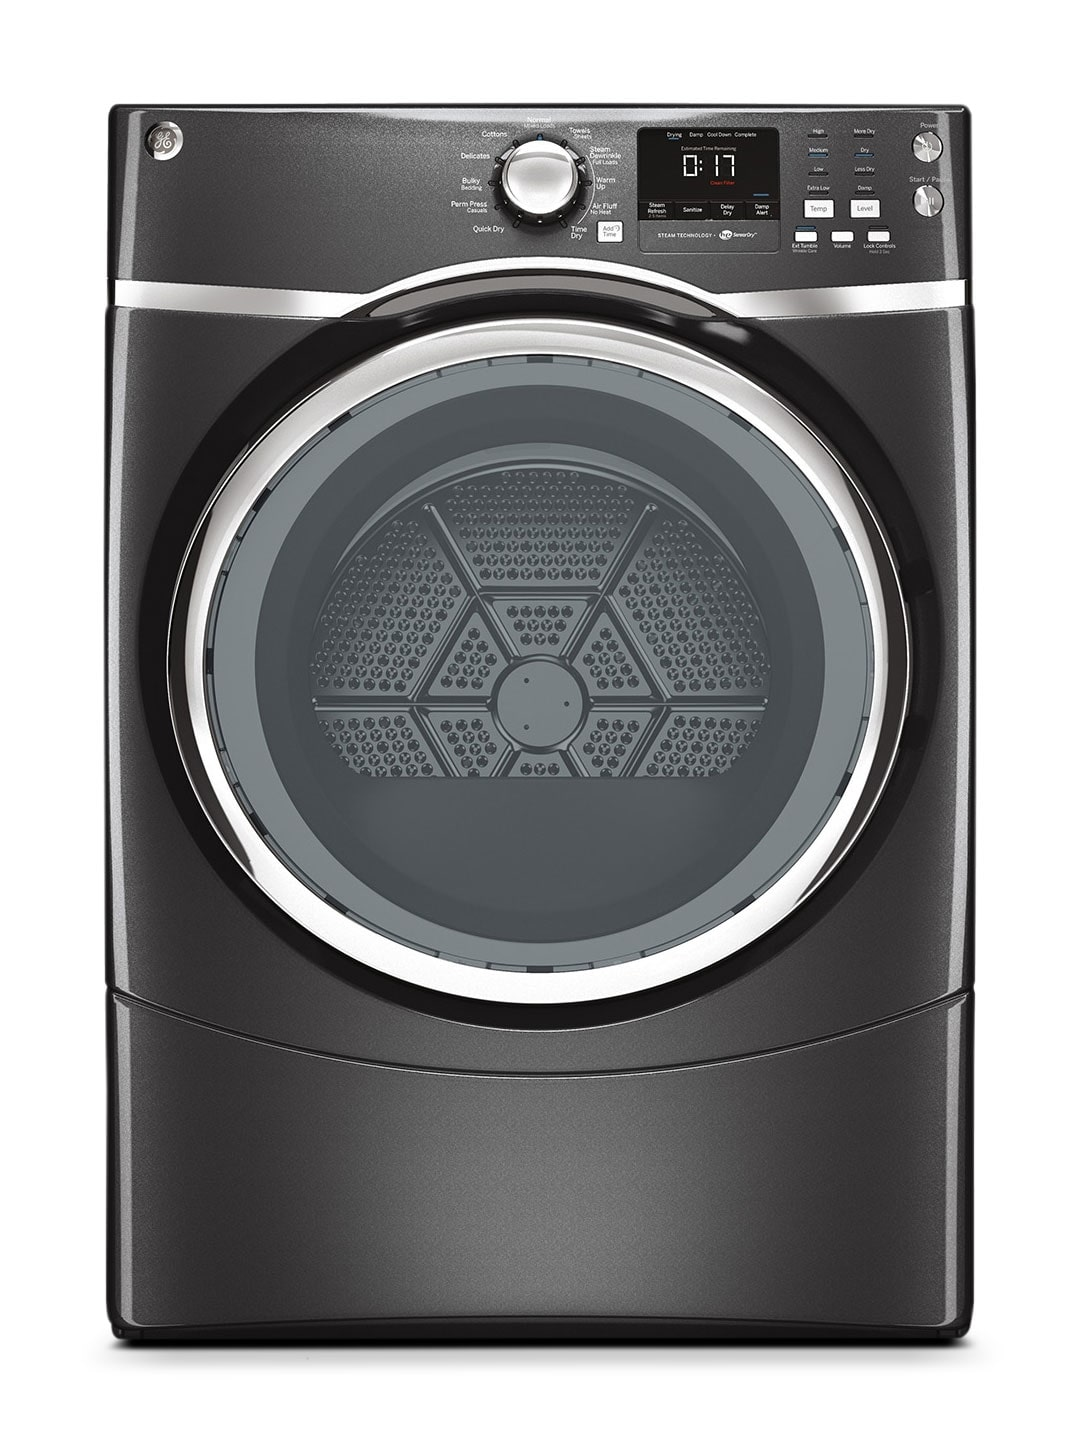 GE Diamond Grey Electric Dryer (7.5 Cu. Ft.) - GFMS175EHDG